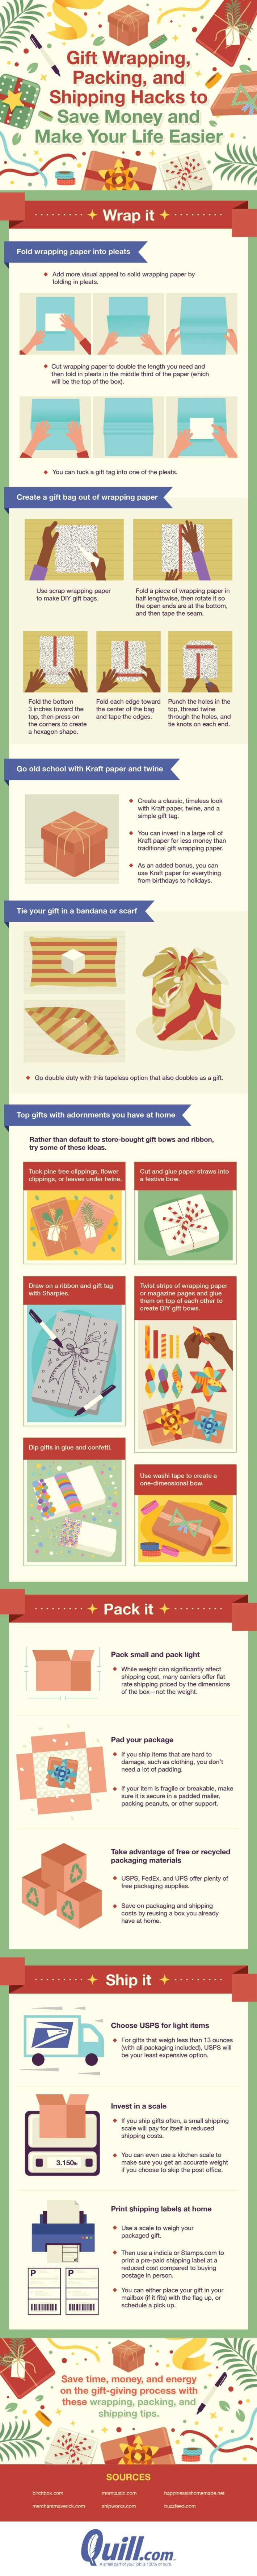 Gift wrapping, packing, and shipping hacks to save money and make your life easier